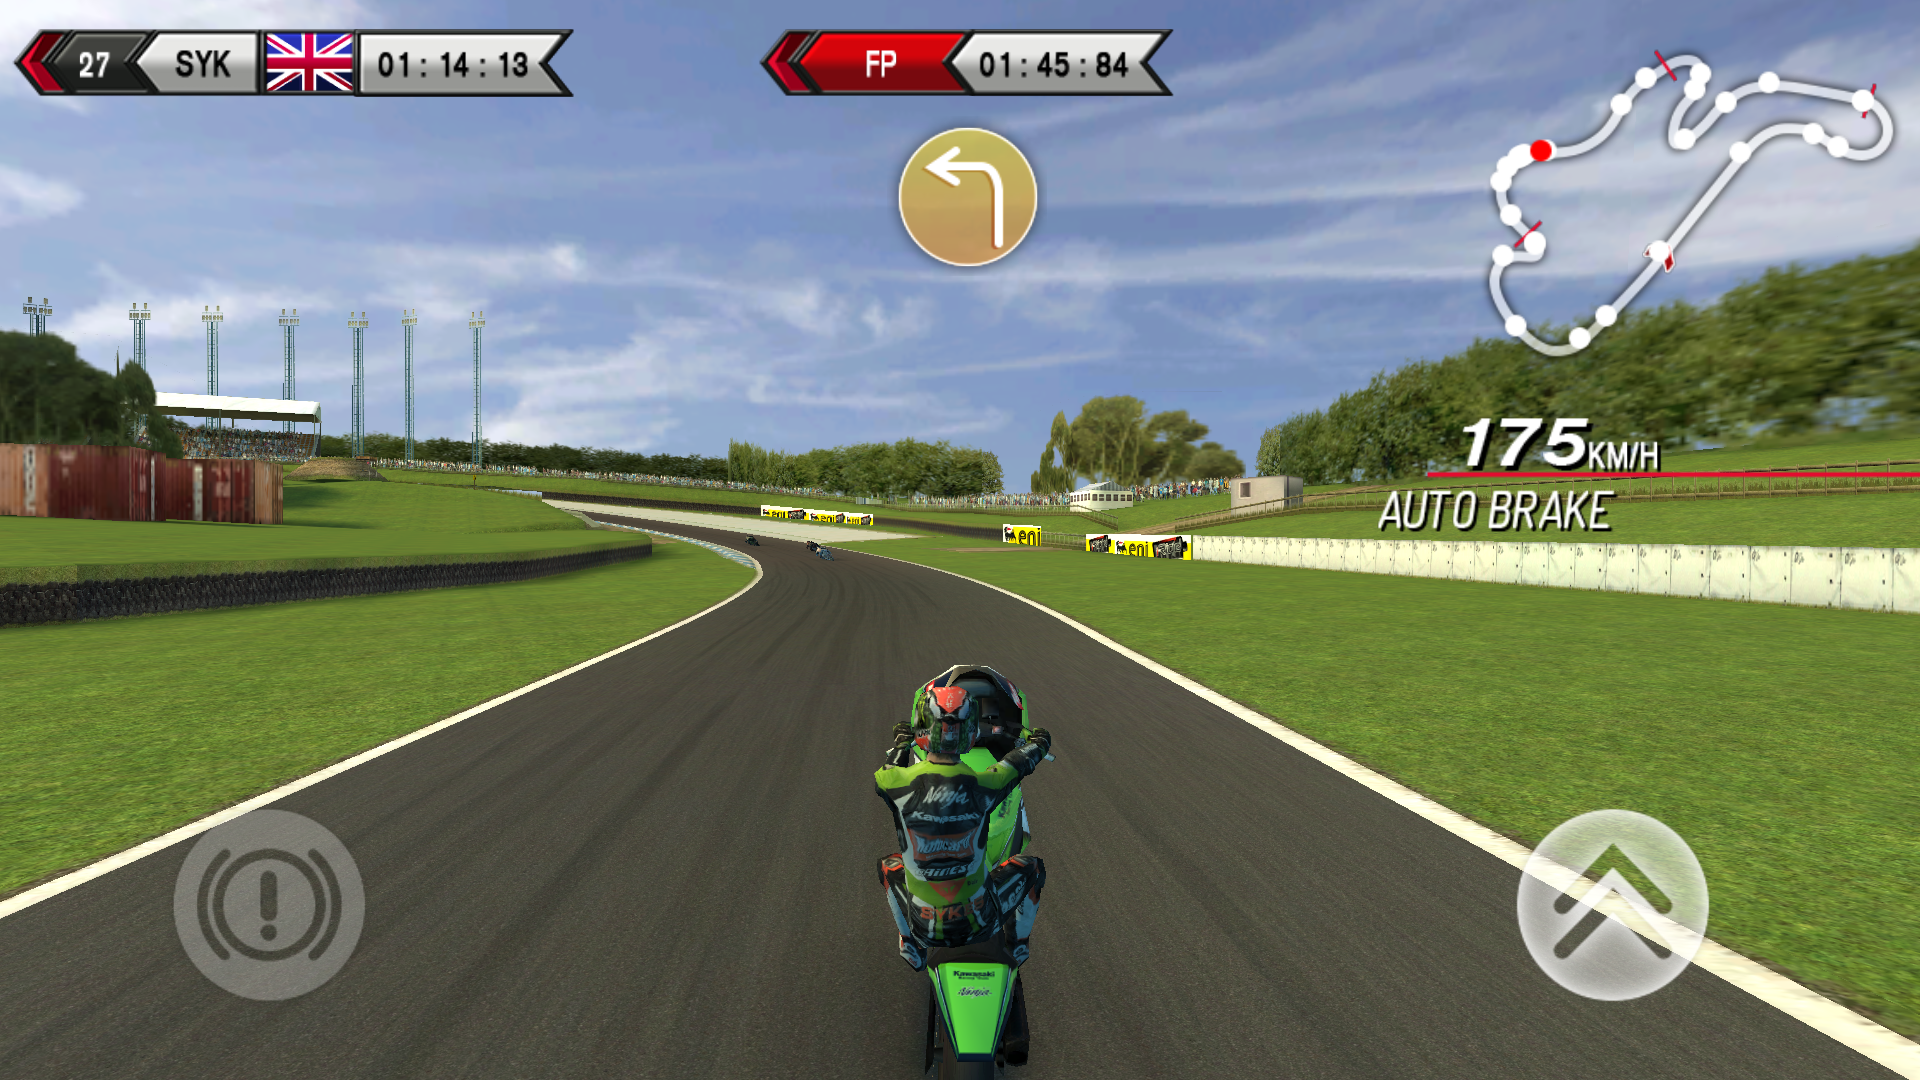 SBK14 Official Mobile Game androidアプリスクリーンショット1